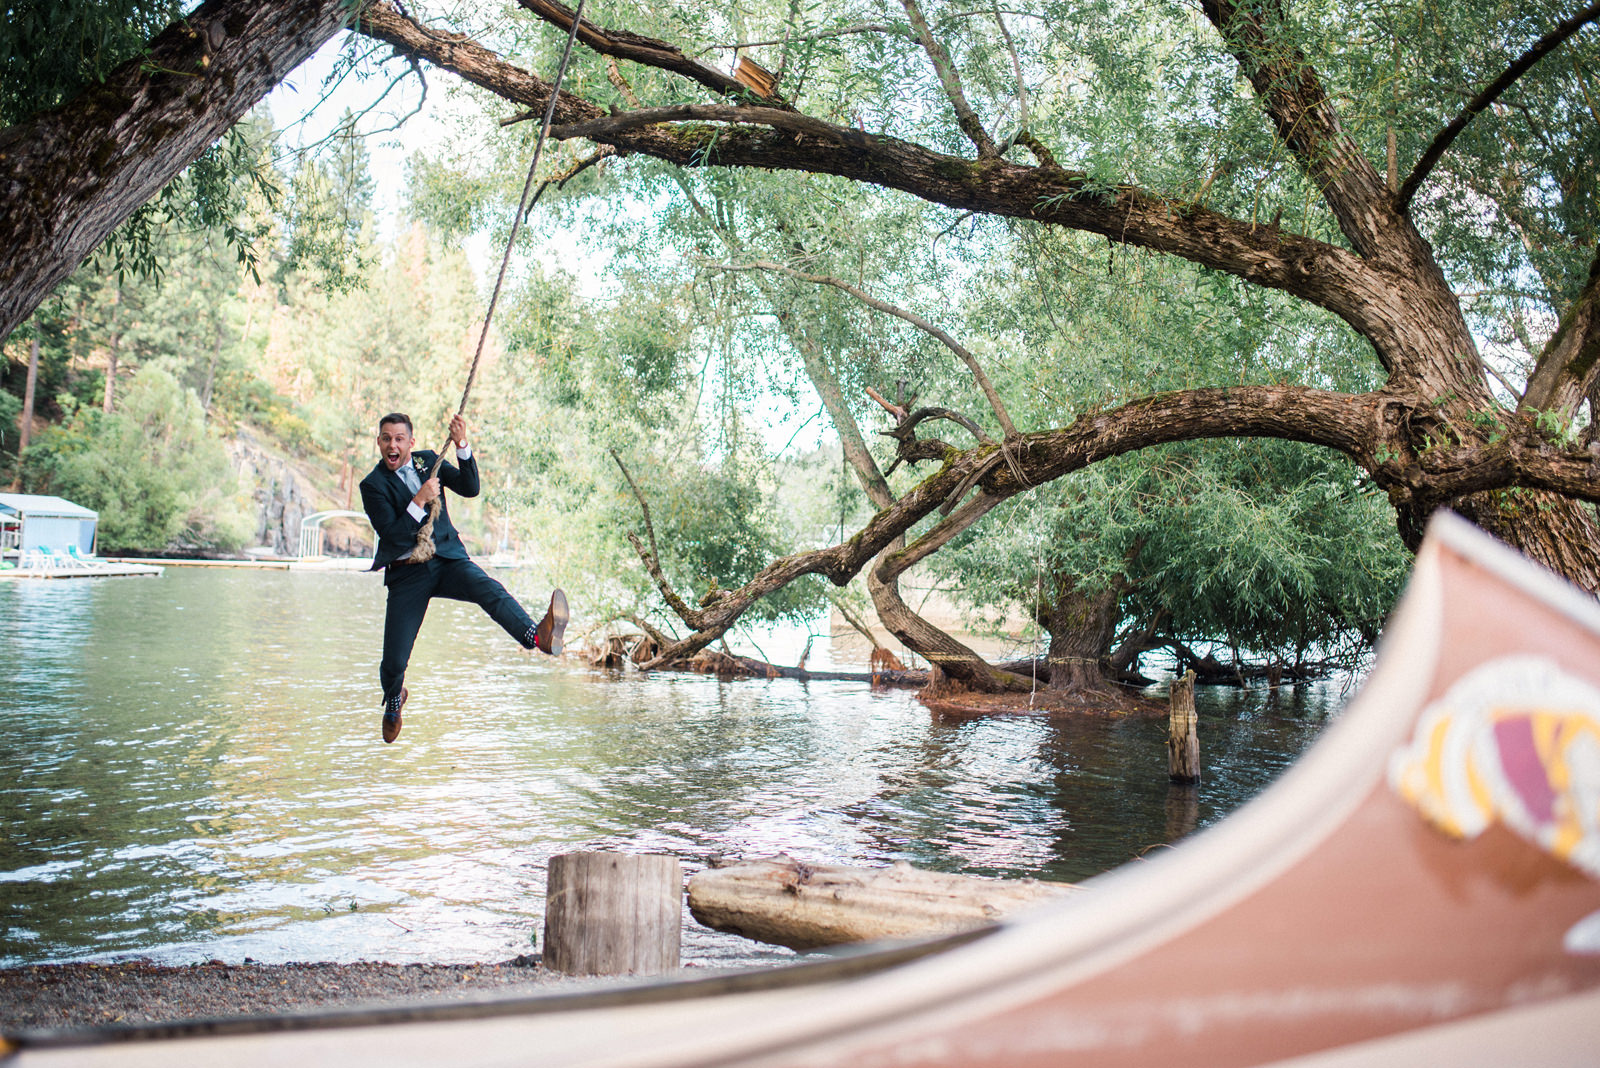 060-groom-swinging-on-rope-swing-near-a-canoe-in-coeur-d-alene-idaho.jpg